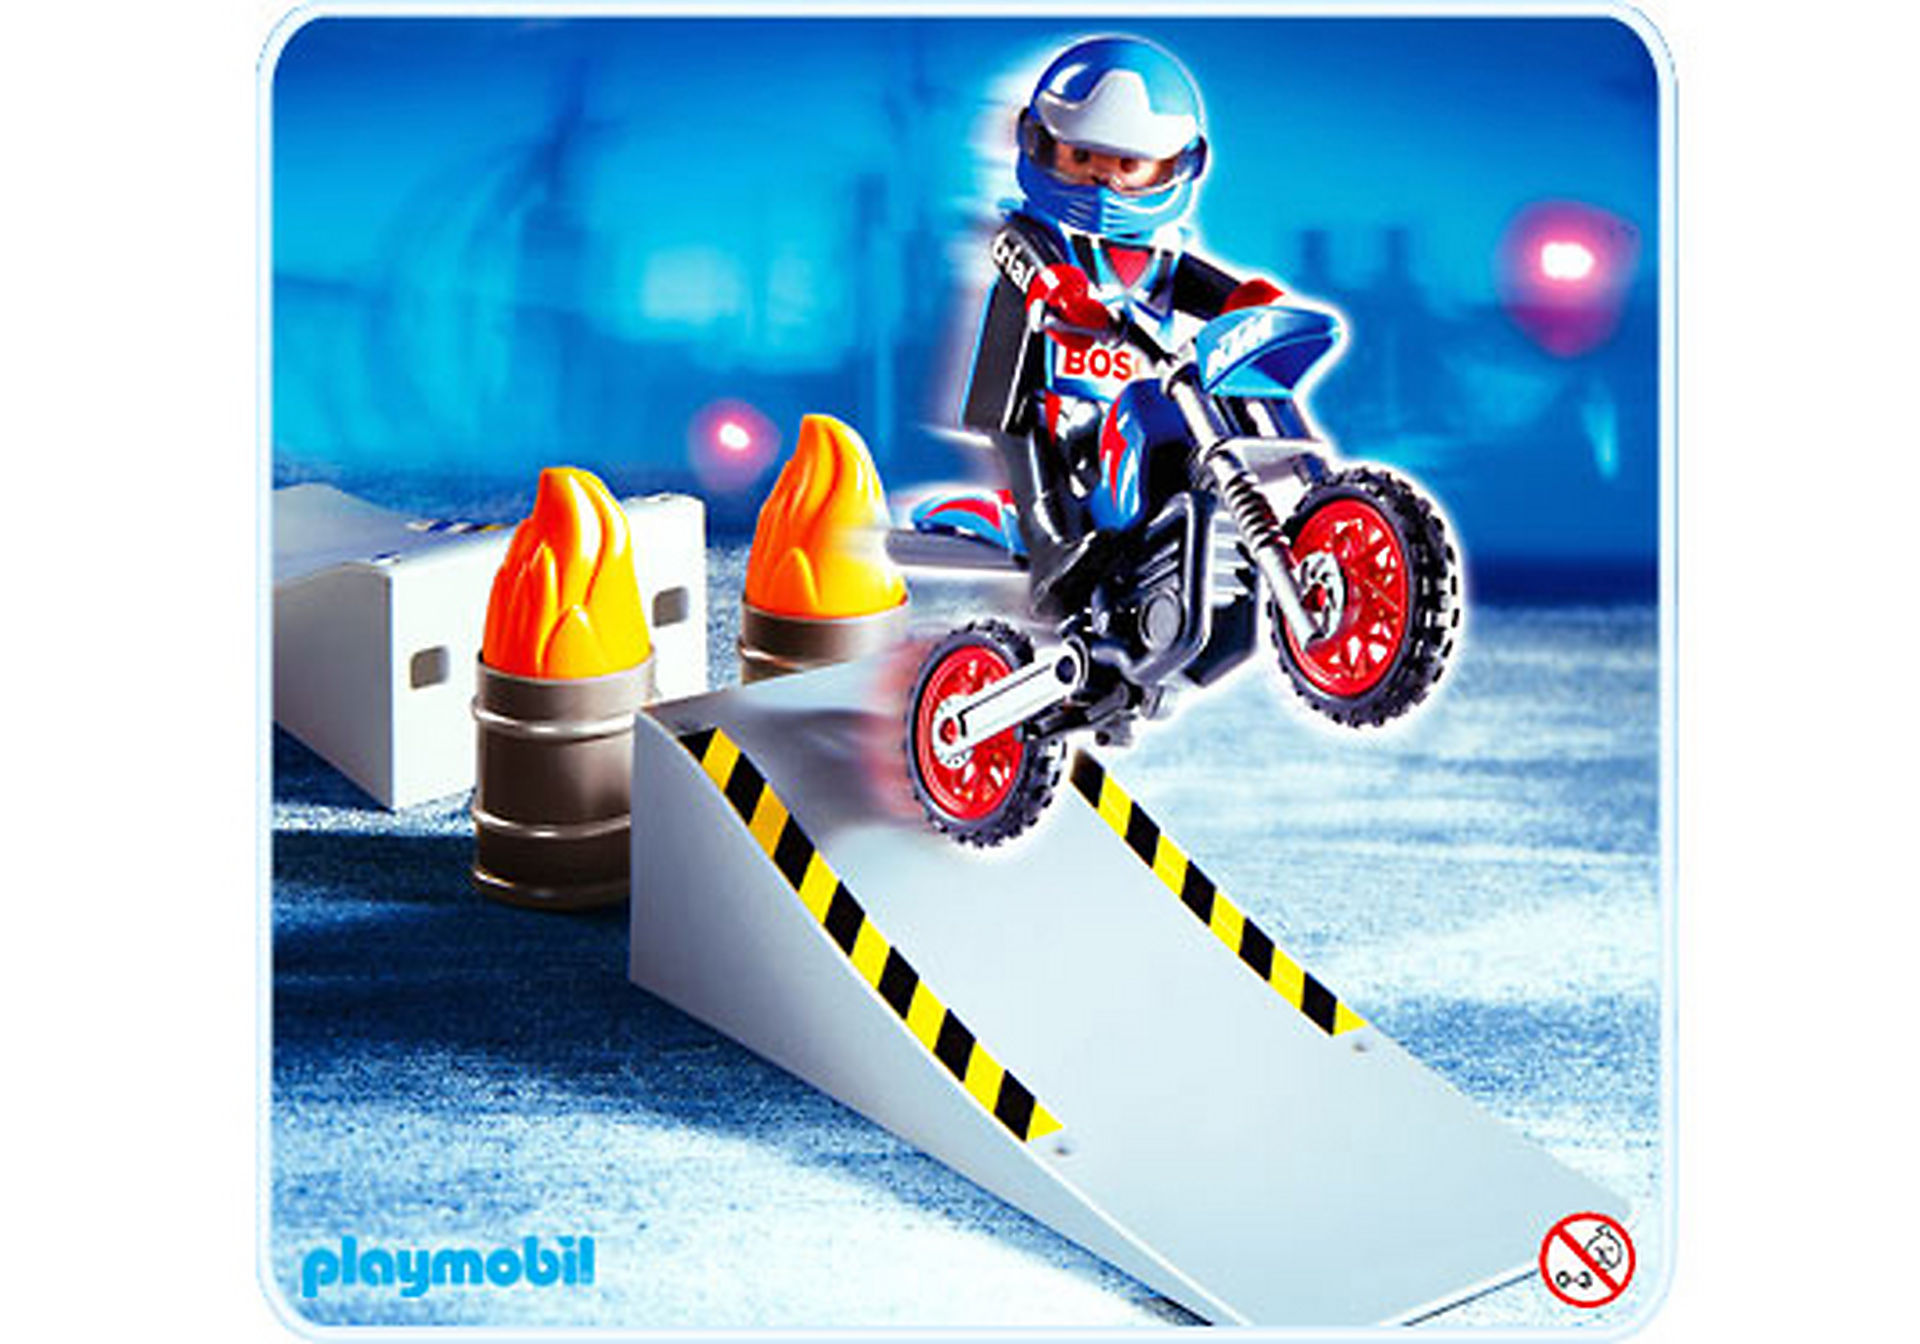 http://media.playmobil.com/i/playmobil/4416-A_product_detail/Motocross-Fahrer mit Rampe